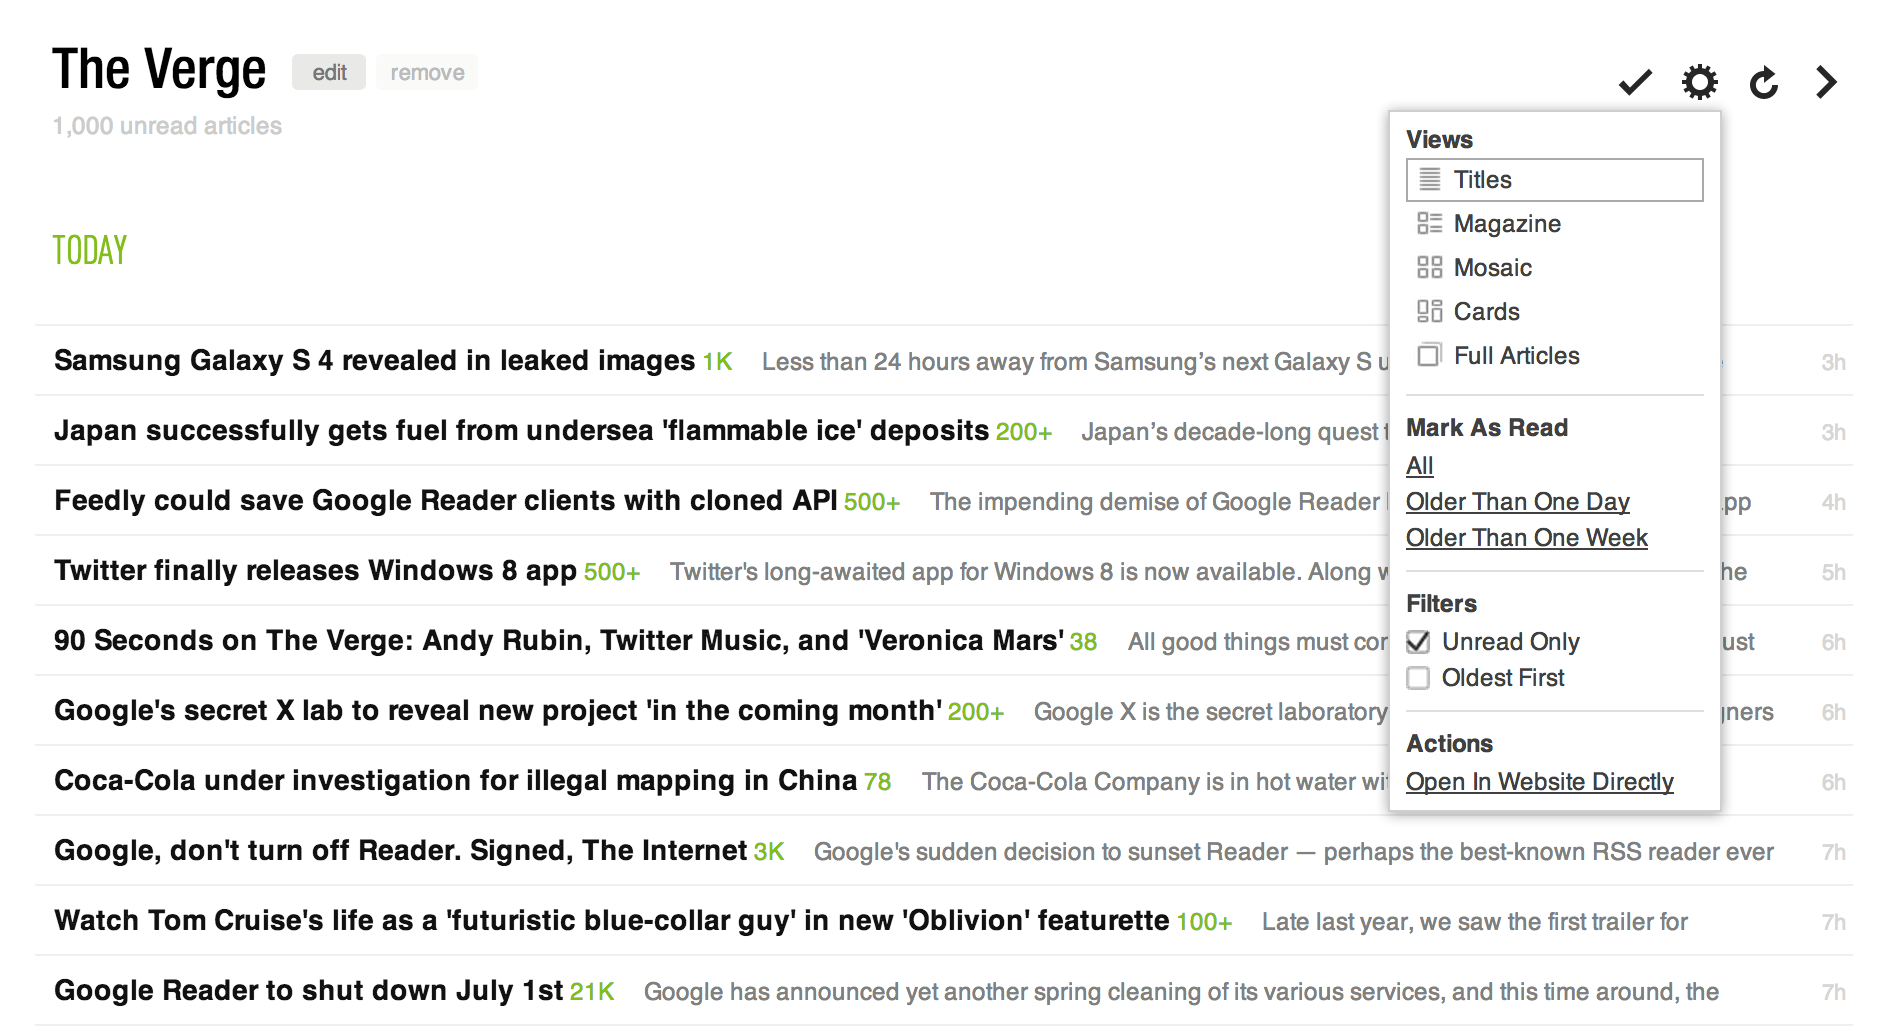 Tips for Google Reader users migrating to feedly